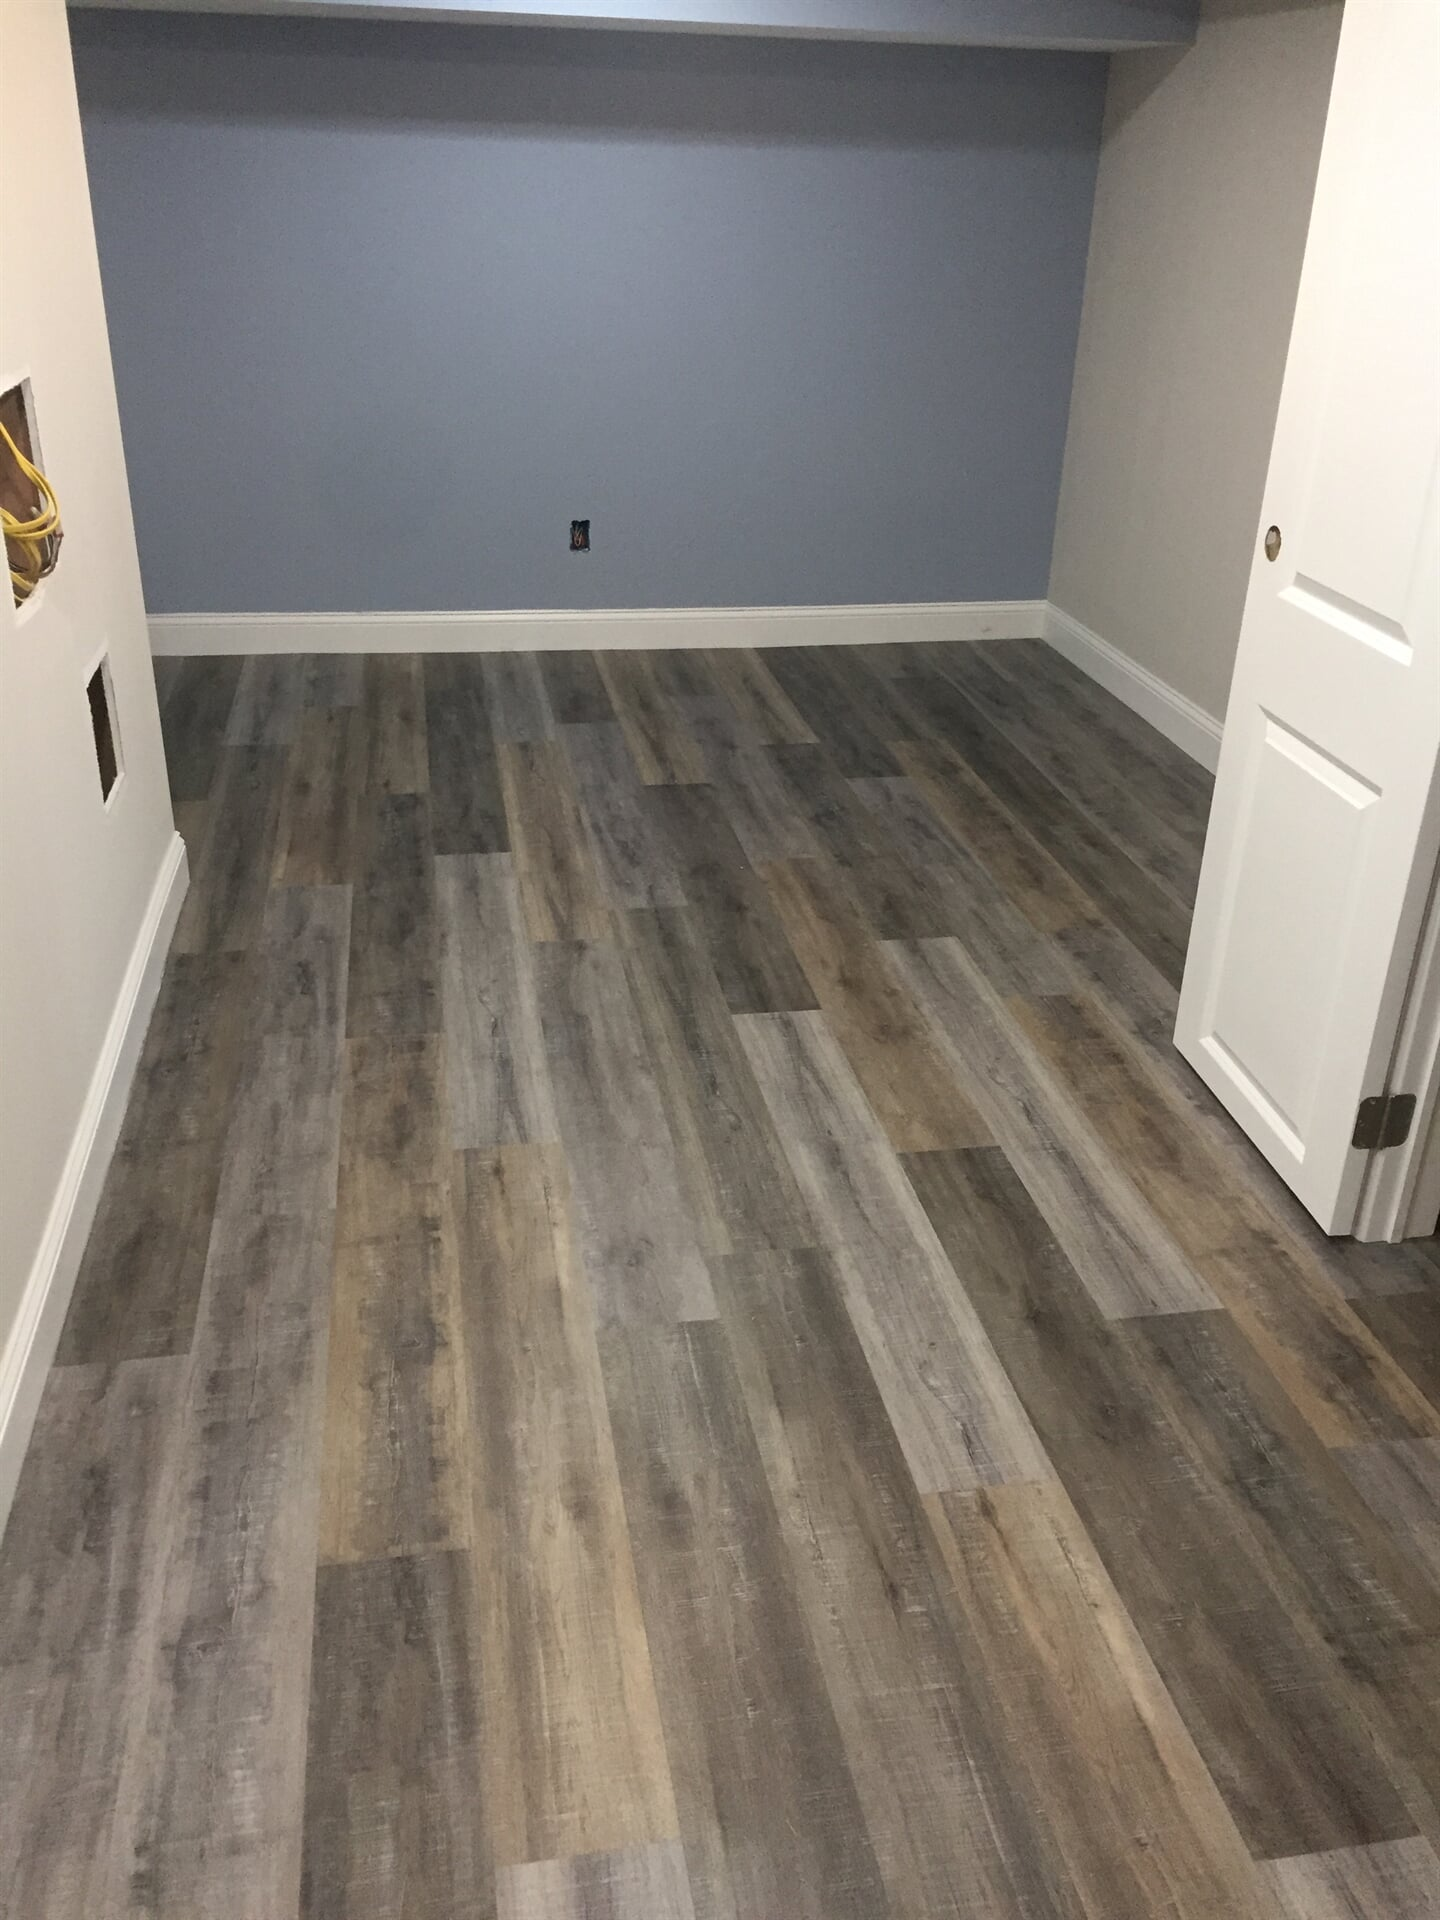 Wood flooring in The Bronx, NY from White Plains Carpets, Floors & Blinds